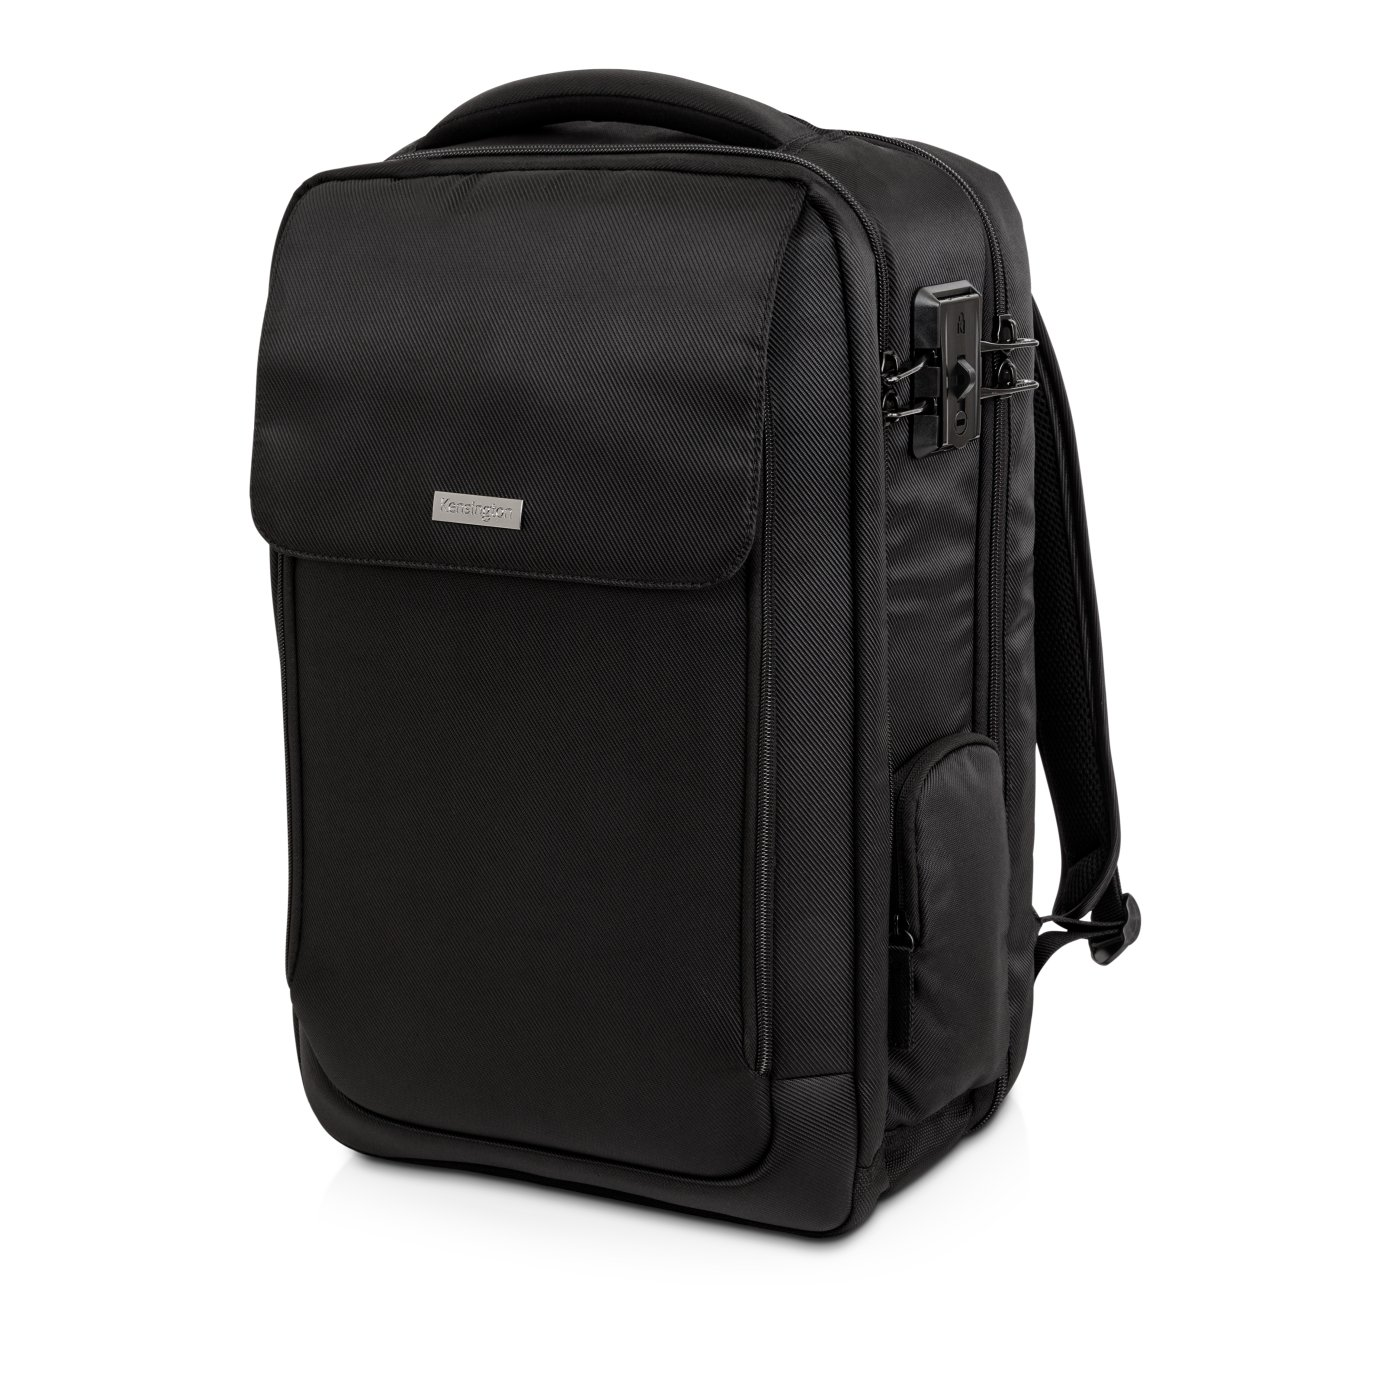 "c946d3d8f7 Kensington - Products - Laptop Bags - Backpacks - SecureTrek™ 17"" Overnight  Backpack"